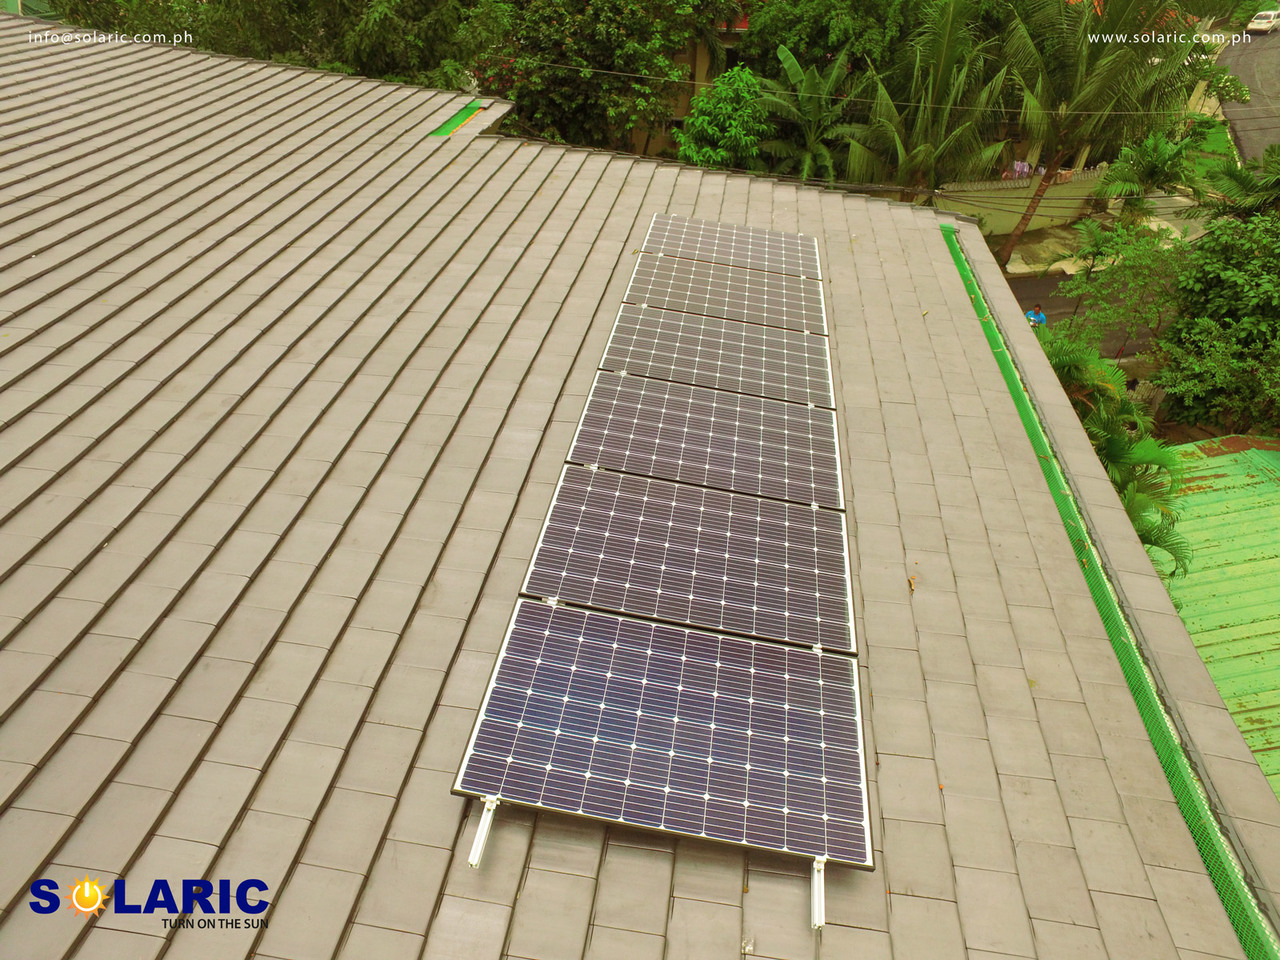 Close up of solar panels on a roof